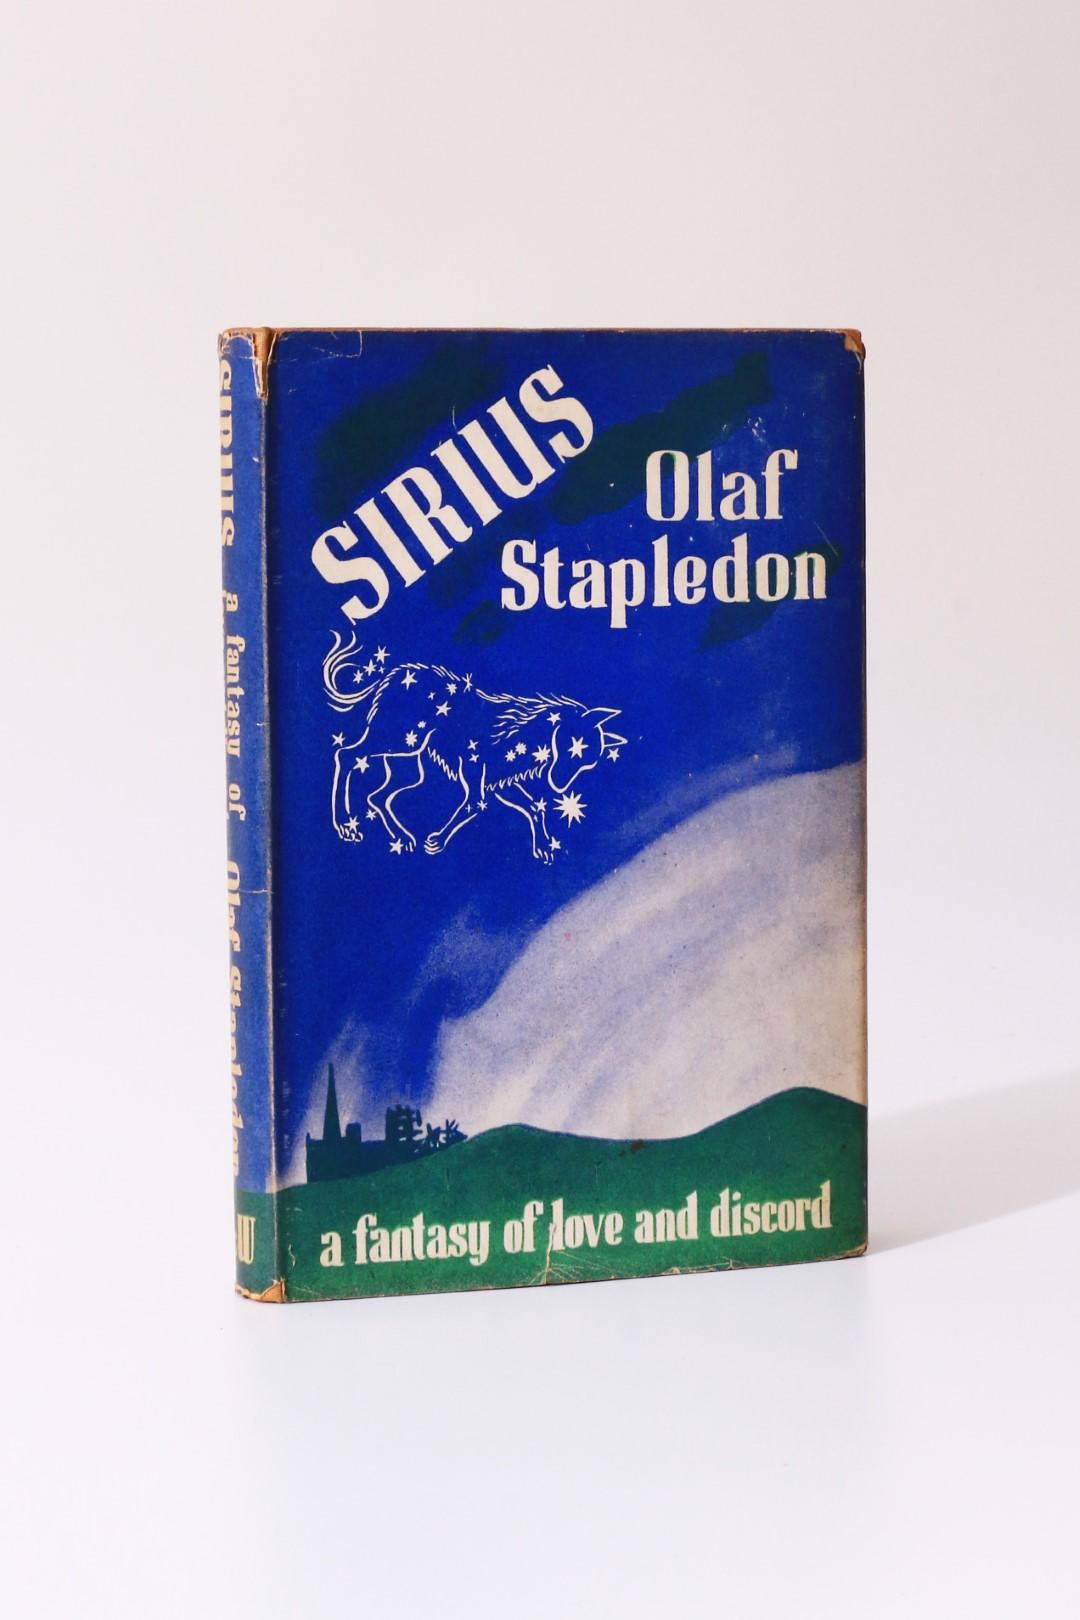 Olaf Stapledon - Sirius - Secker & Warburg, 1944, First Edition.